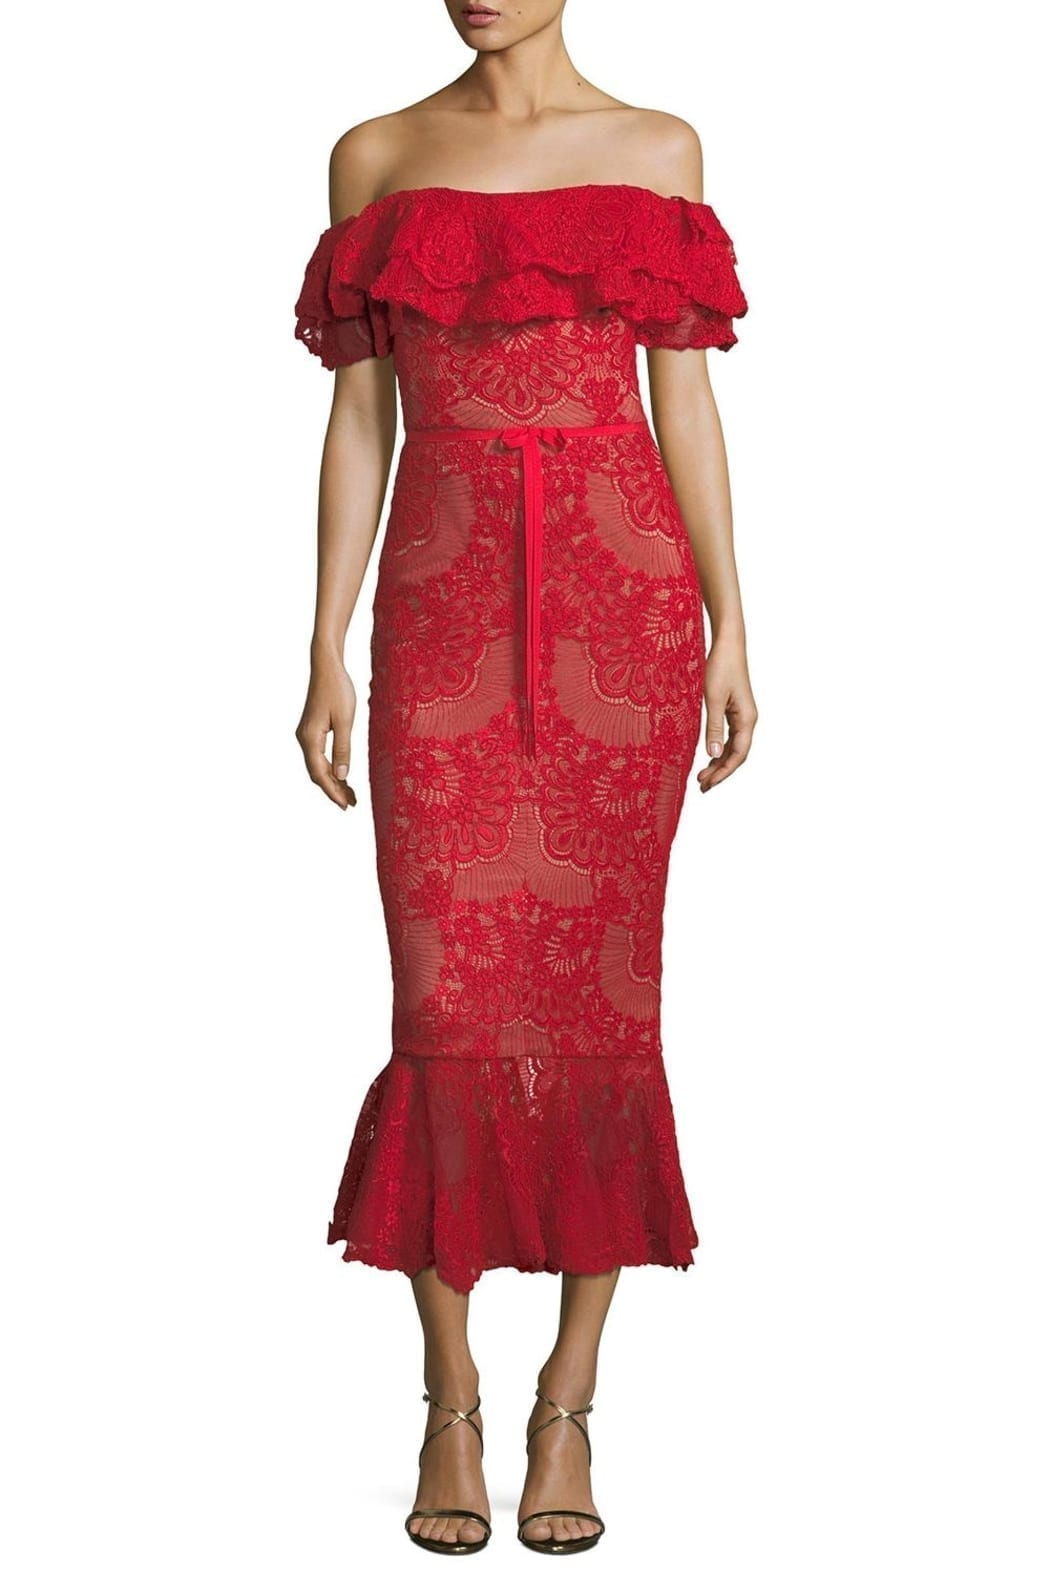 DISTRICT 5 BOUTIQUE Strapless Lace Red Dress